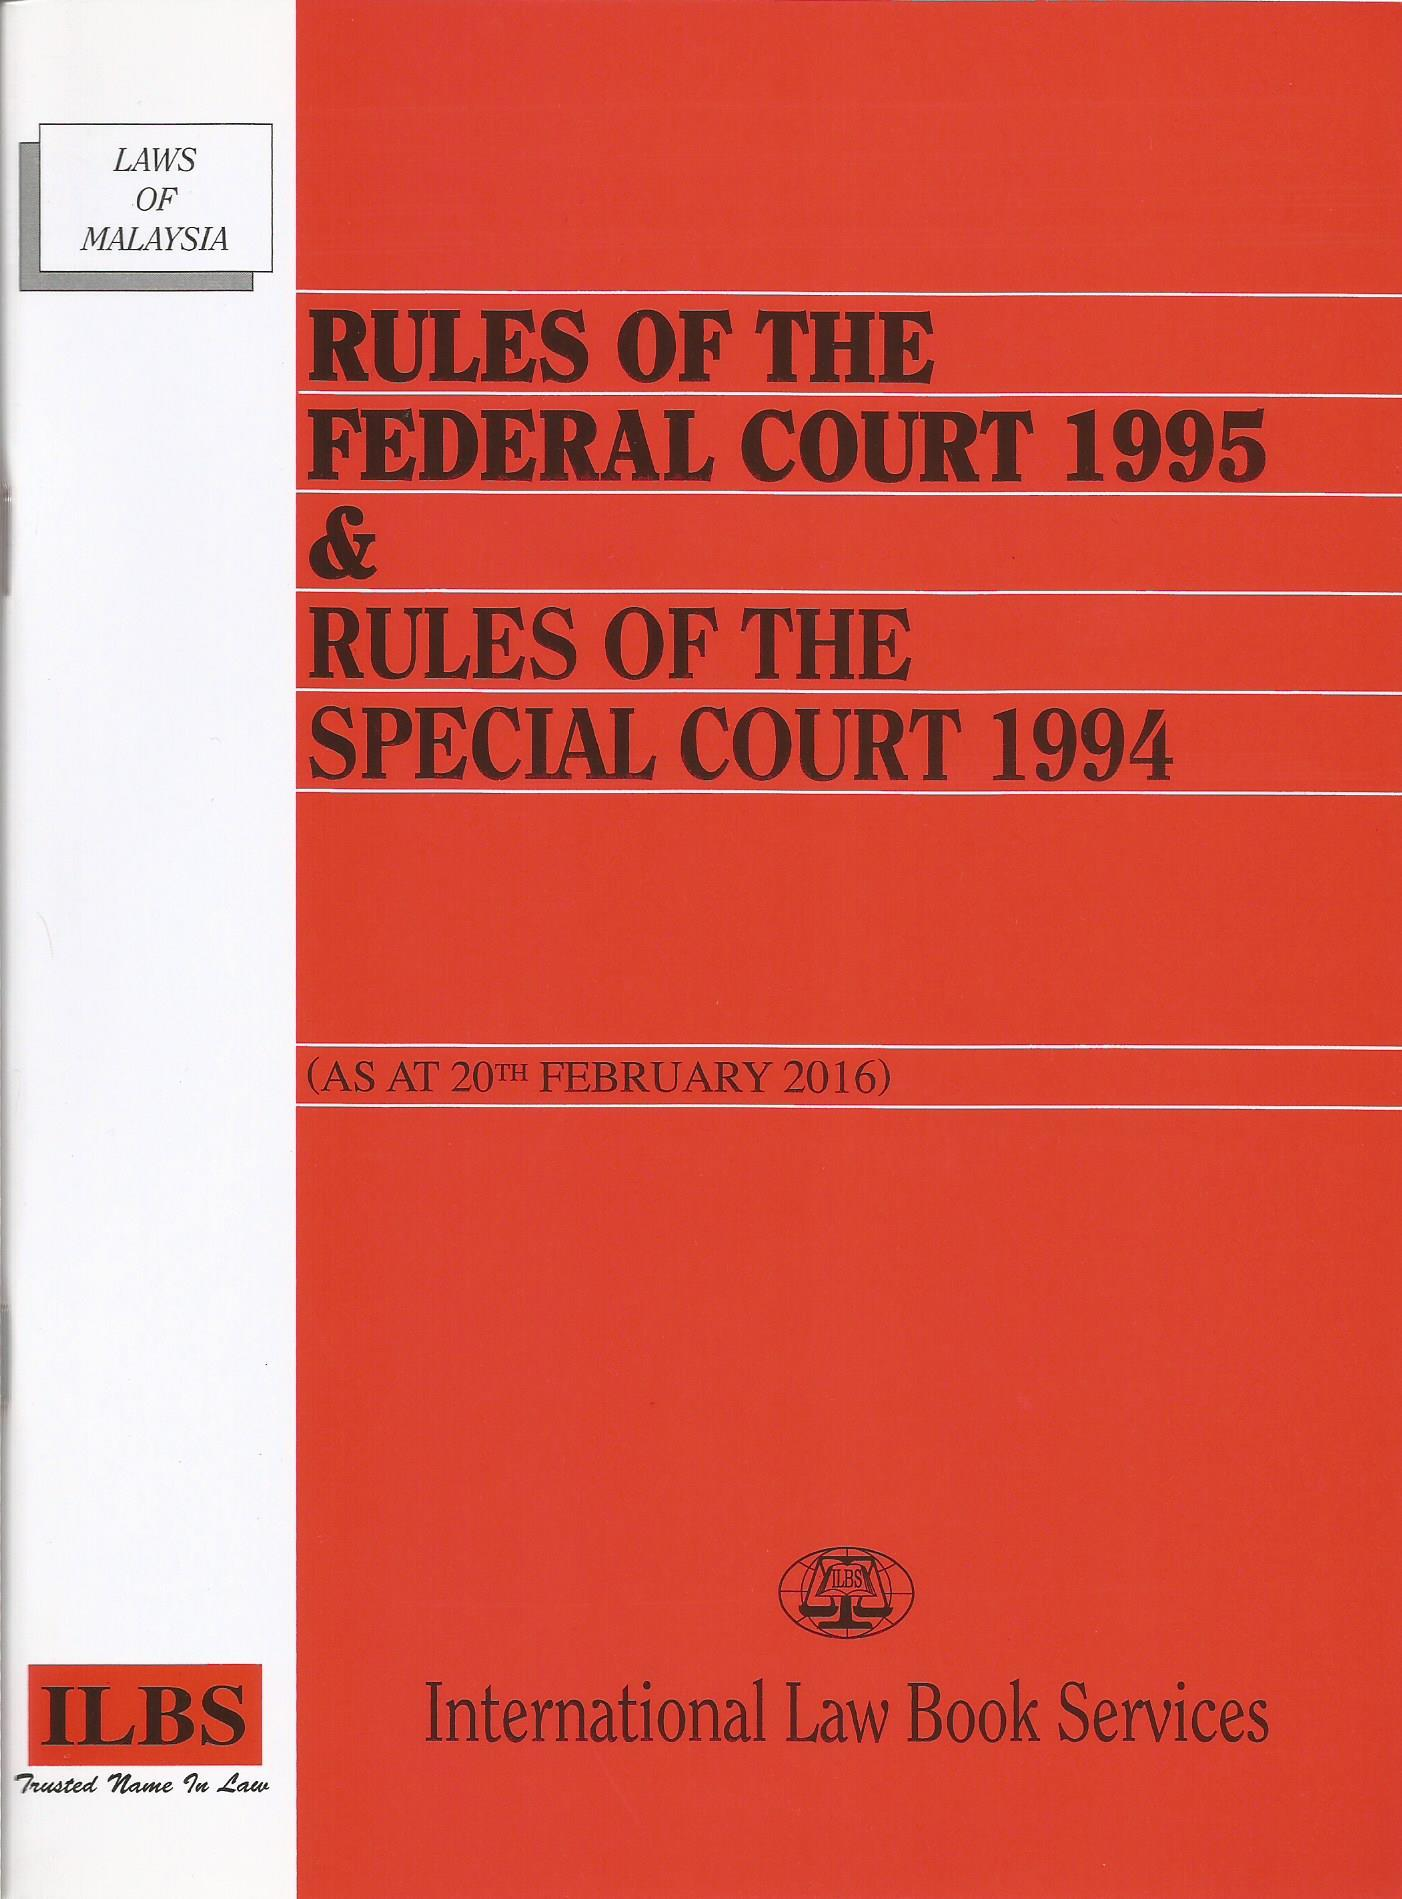 rules of federal court rm15 0.20001.jpg